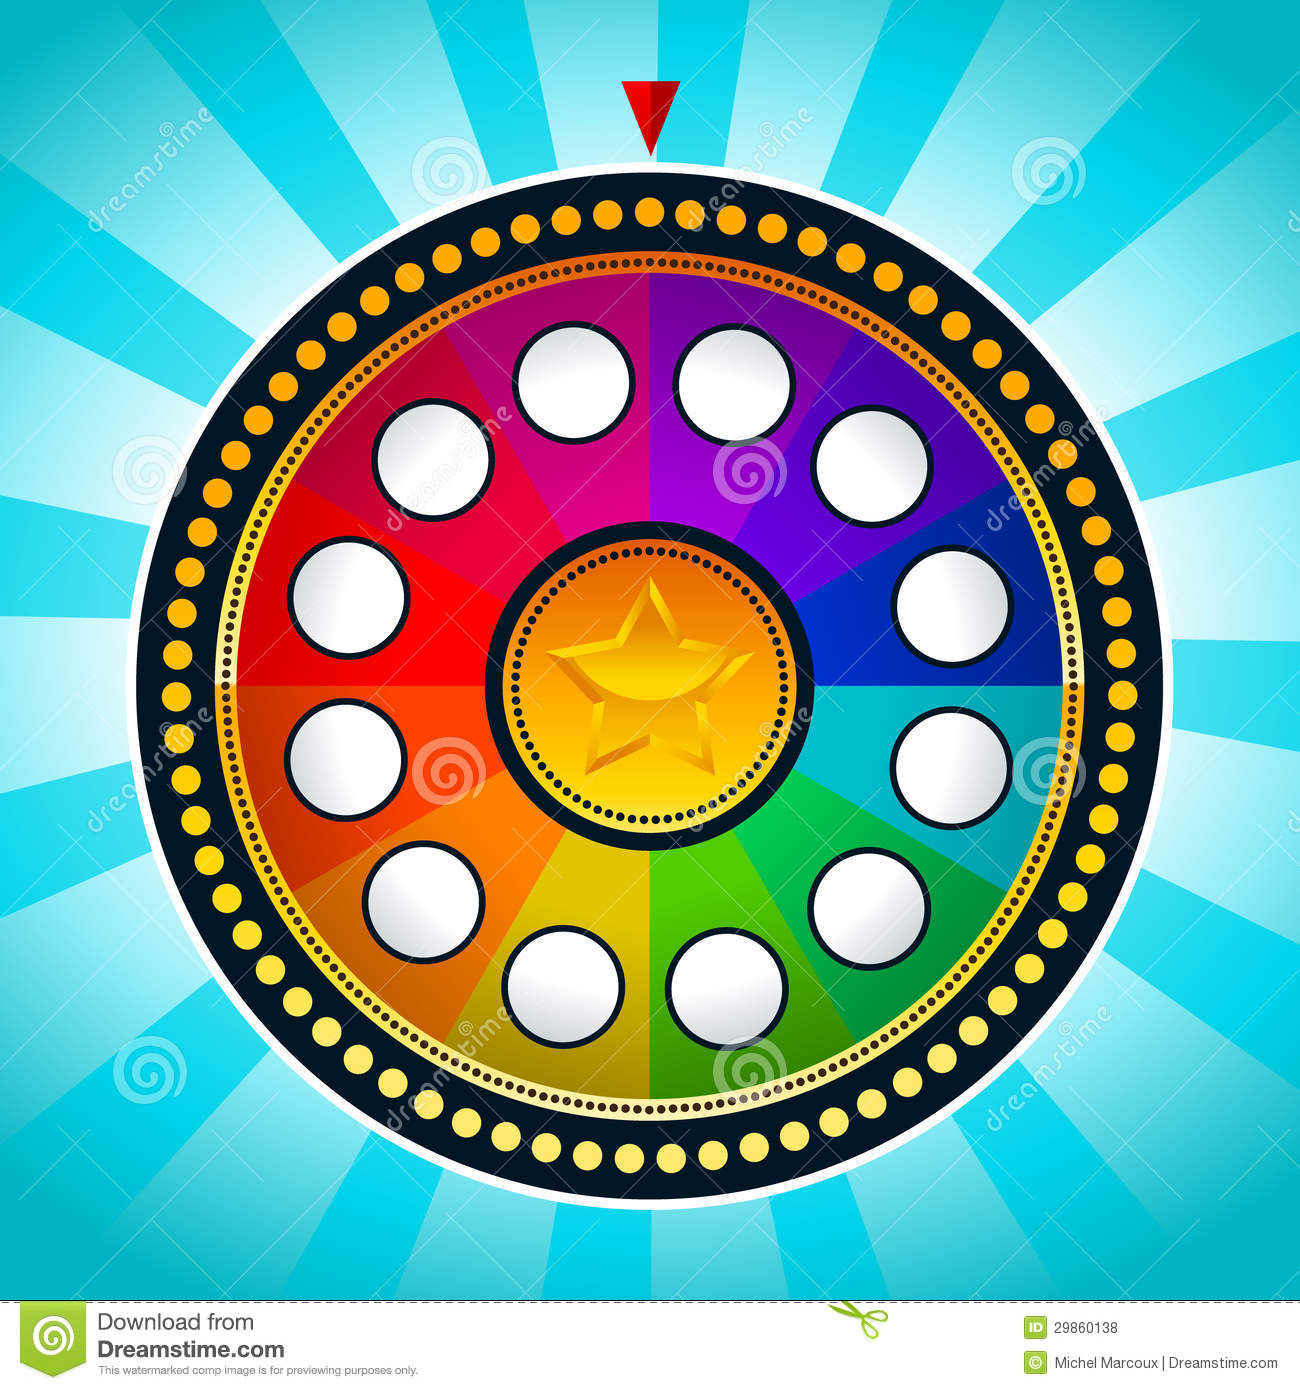 colorful wheel of fortune stock vector illustration of illustration 29860138. Black Bedroom Furniture Sets. Home Design Ideas